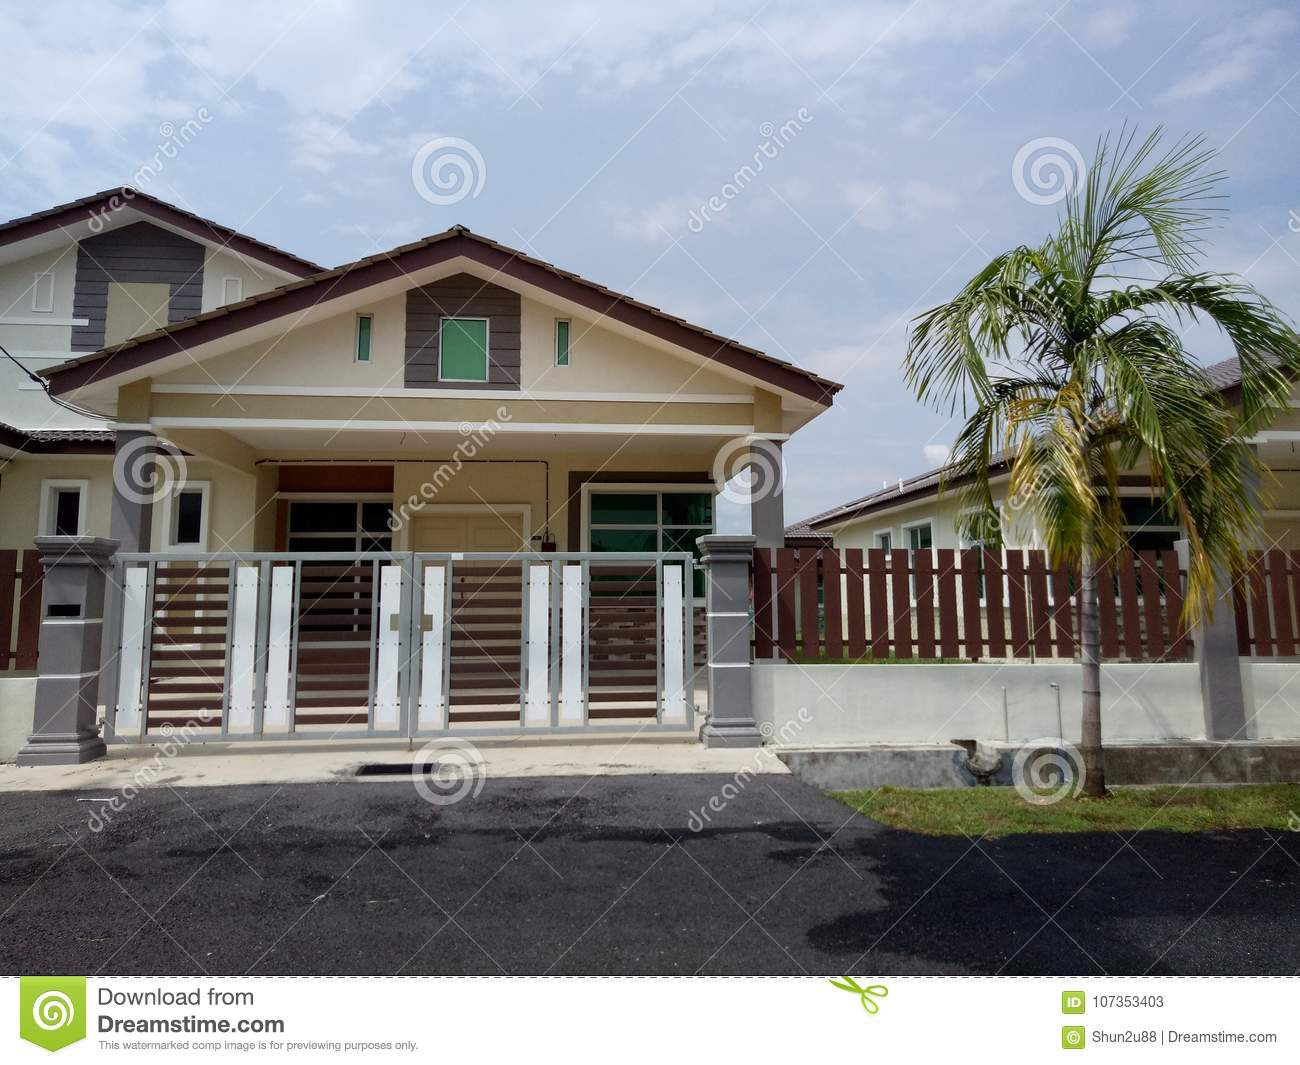 Bungalow House Exterior Stock Image Image Of Exterior 107353403